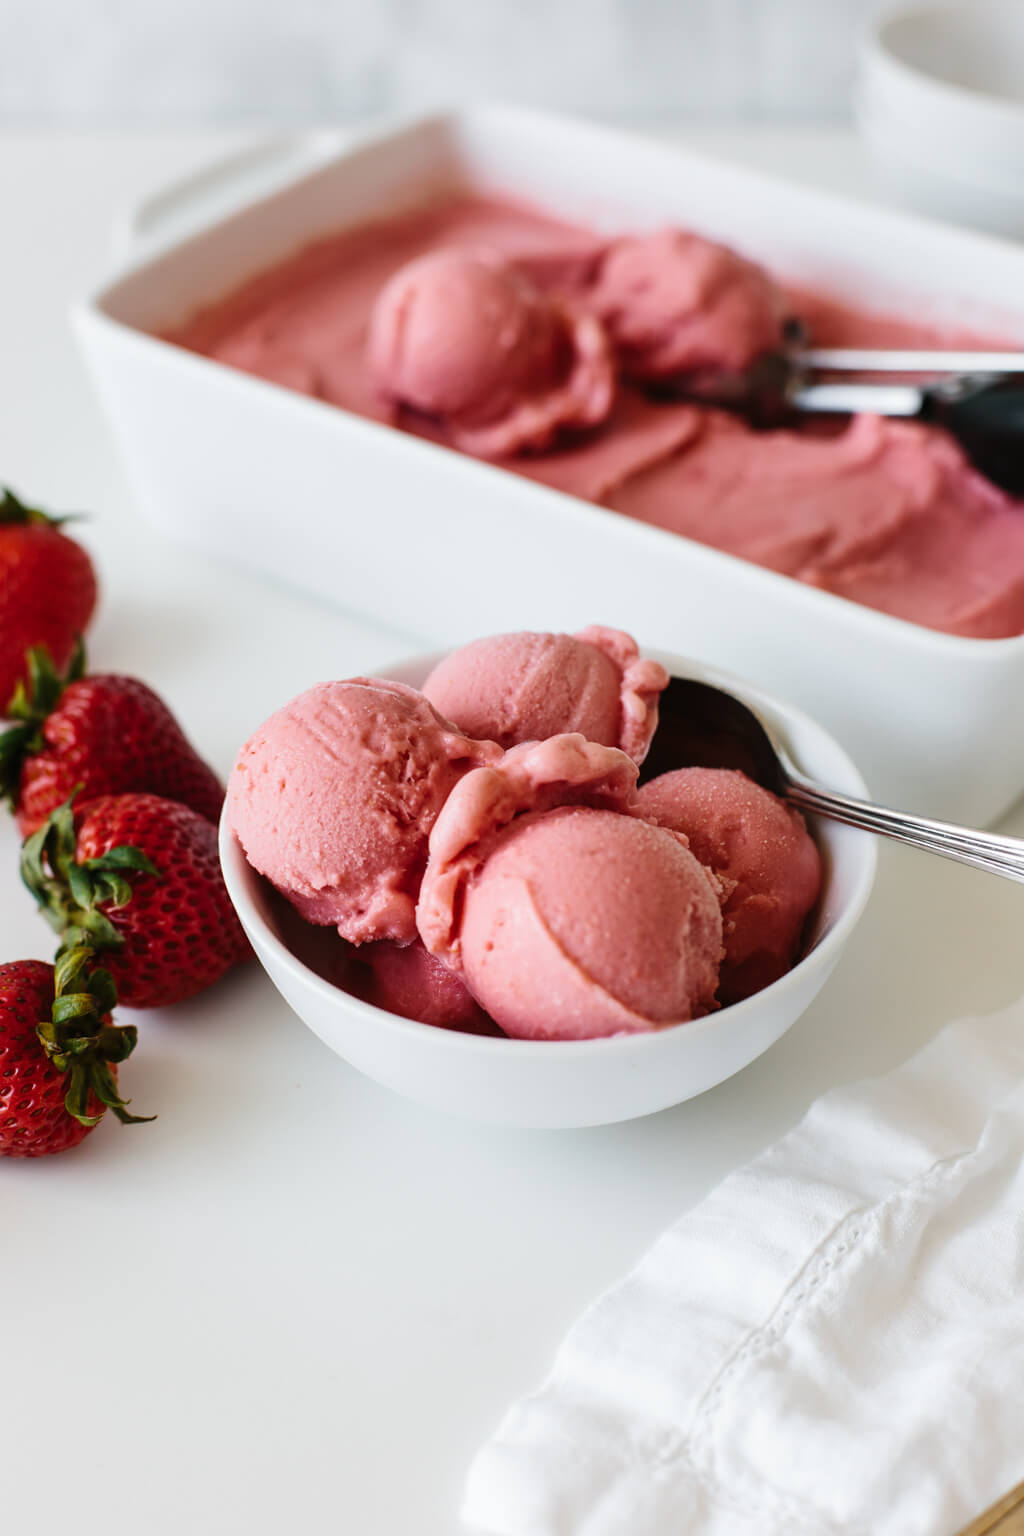 This strawberry frozen yogurt recipe is beyond easy. It takes just three ingredients and 30 seconds! It's delicious, fruity and the perfect healthy dessert recipe for hot days.